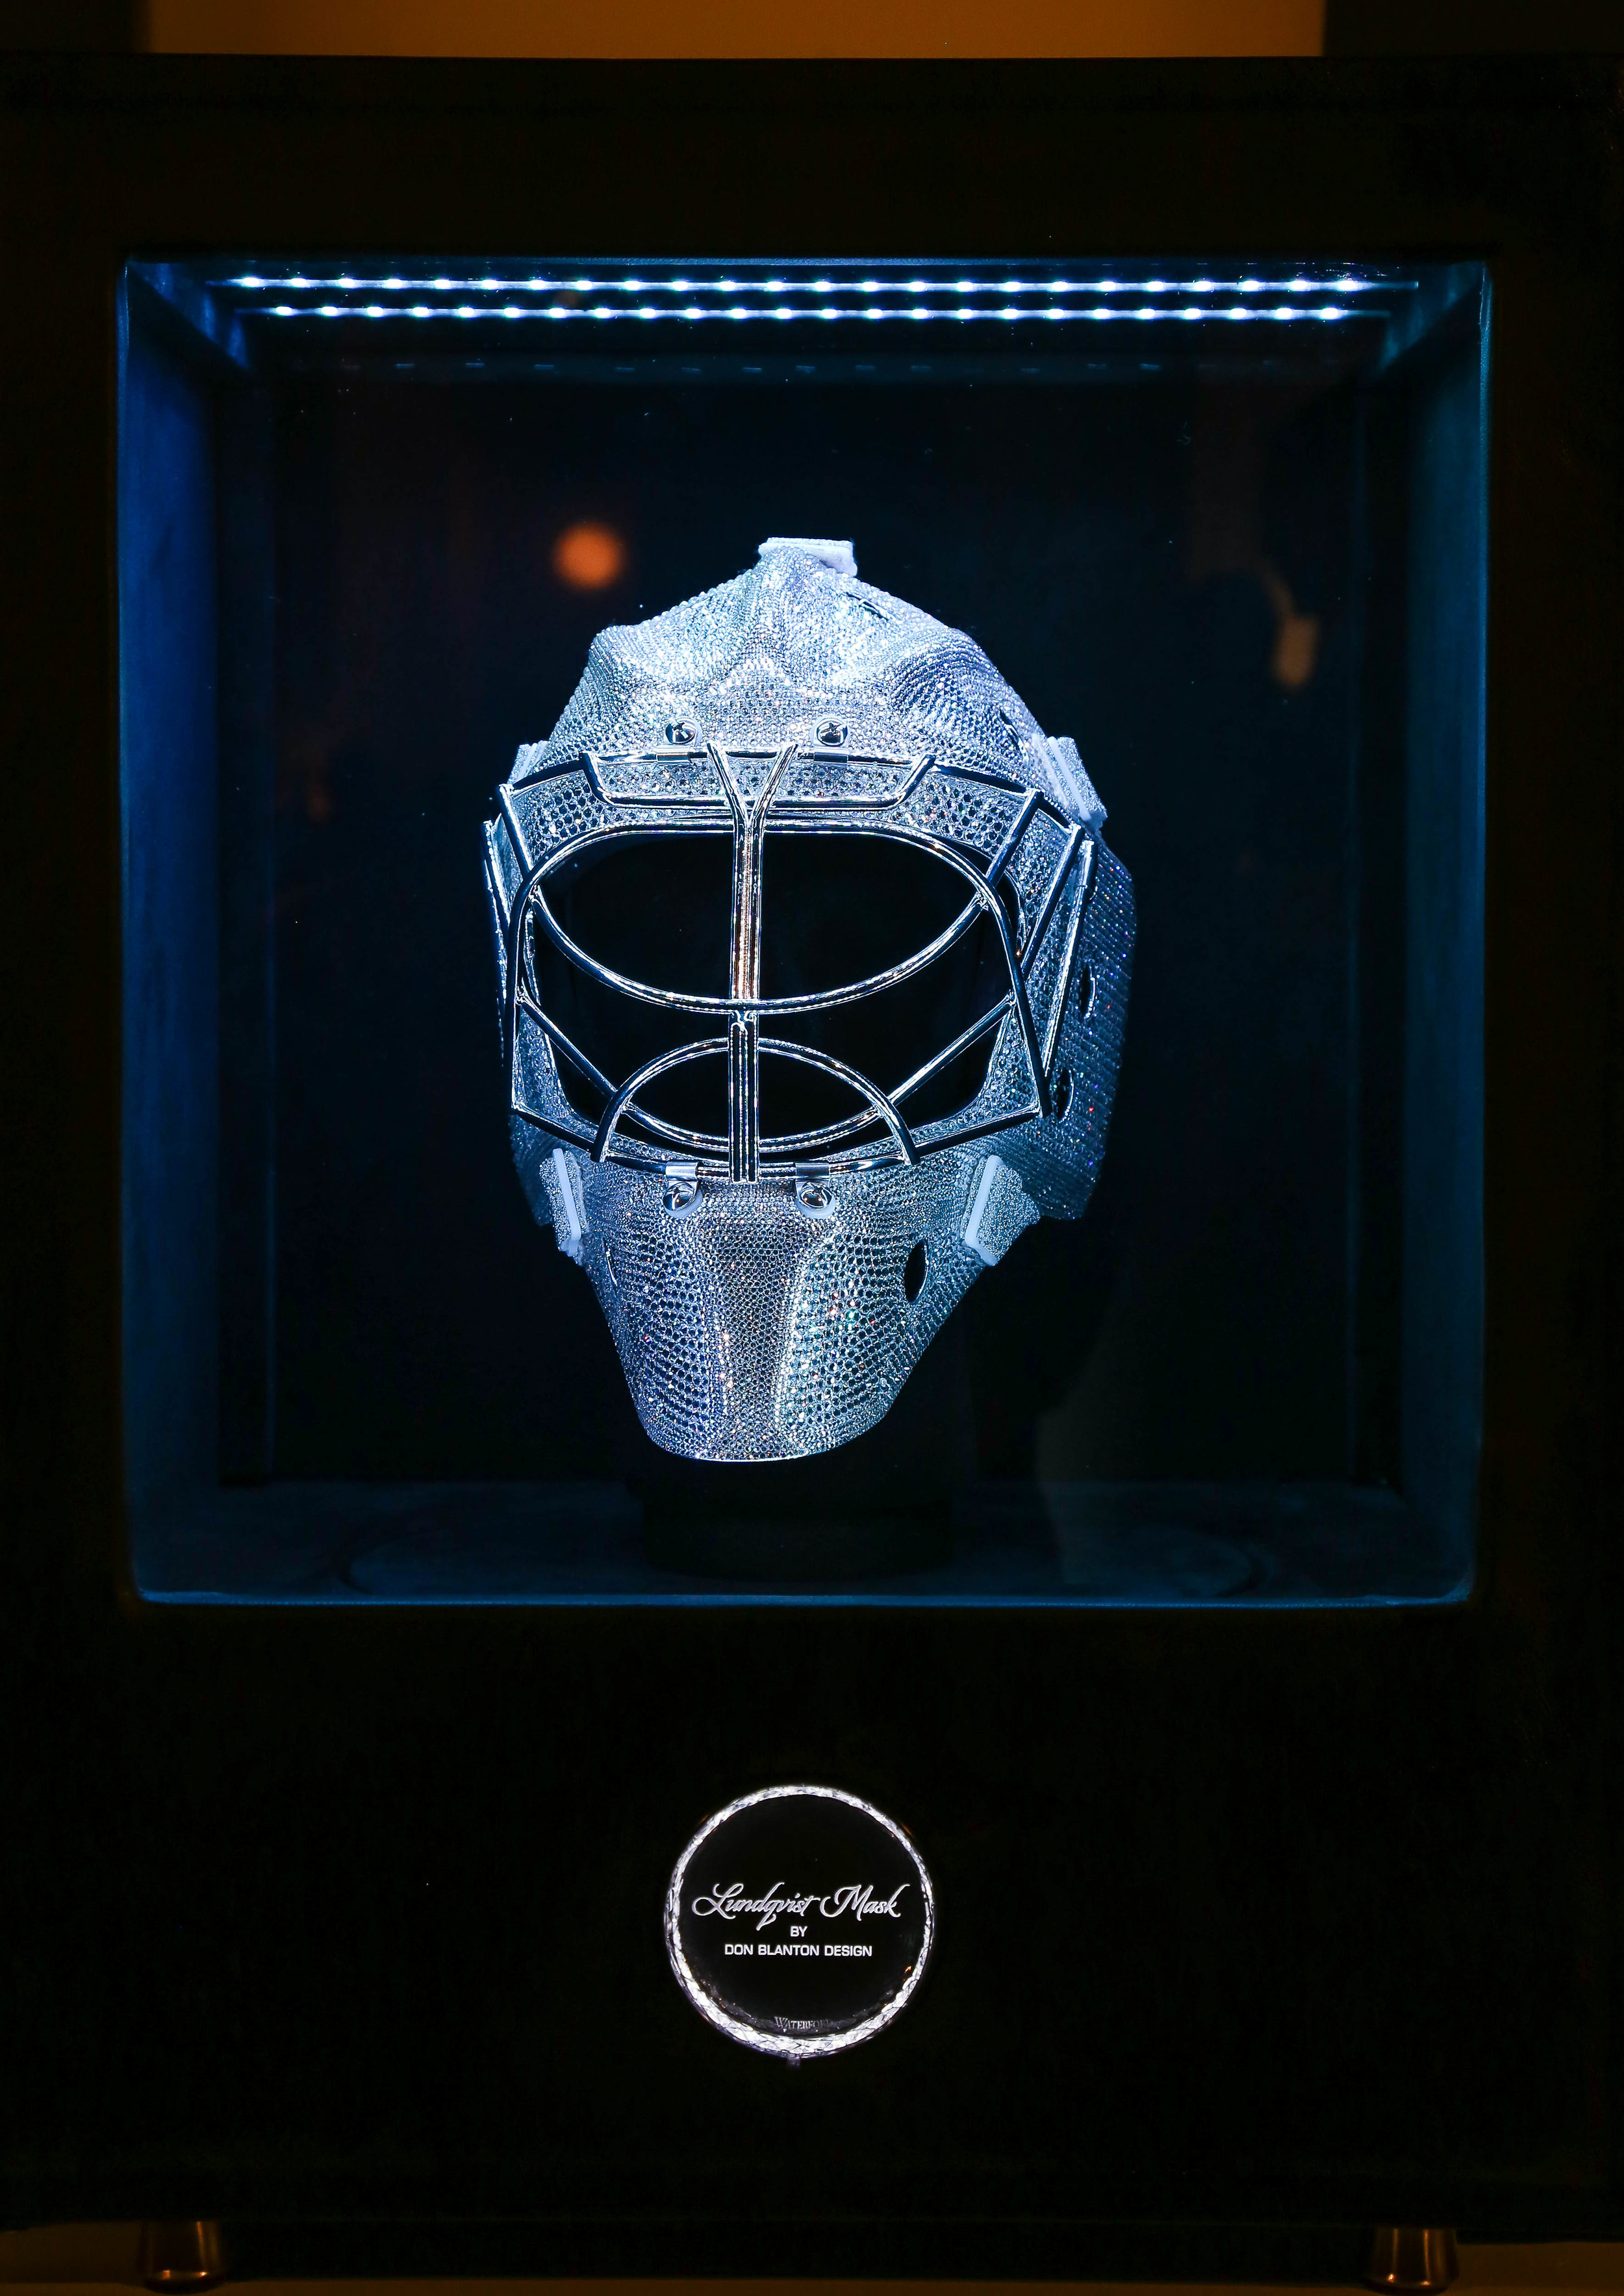 Diamond encrusted mask in case